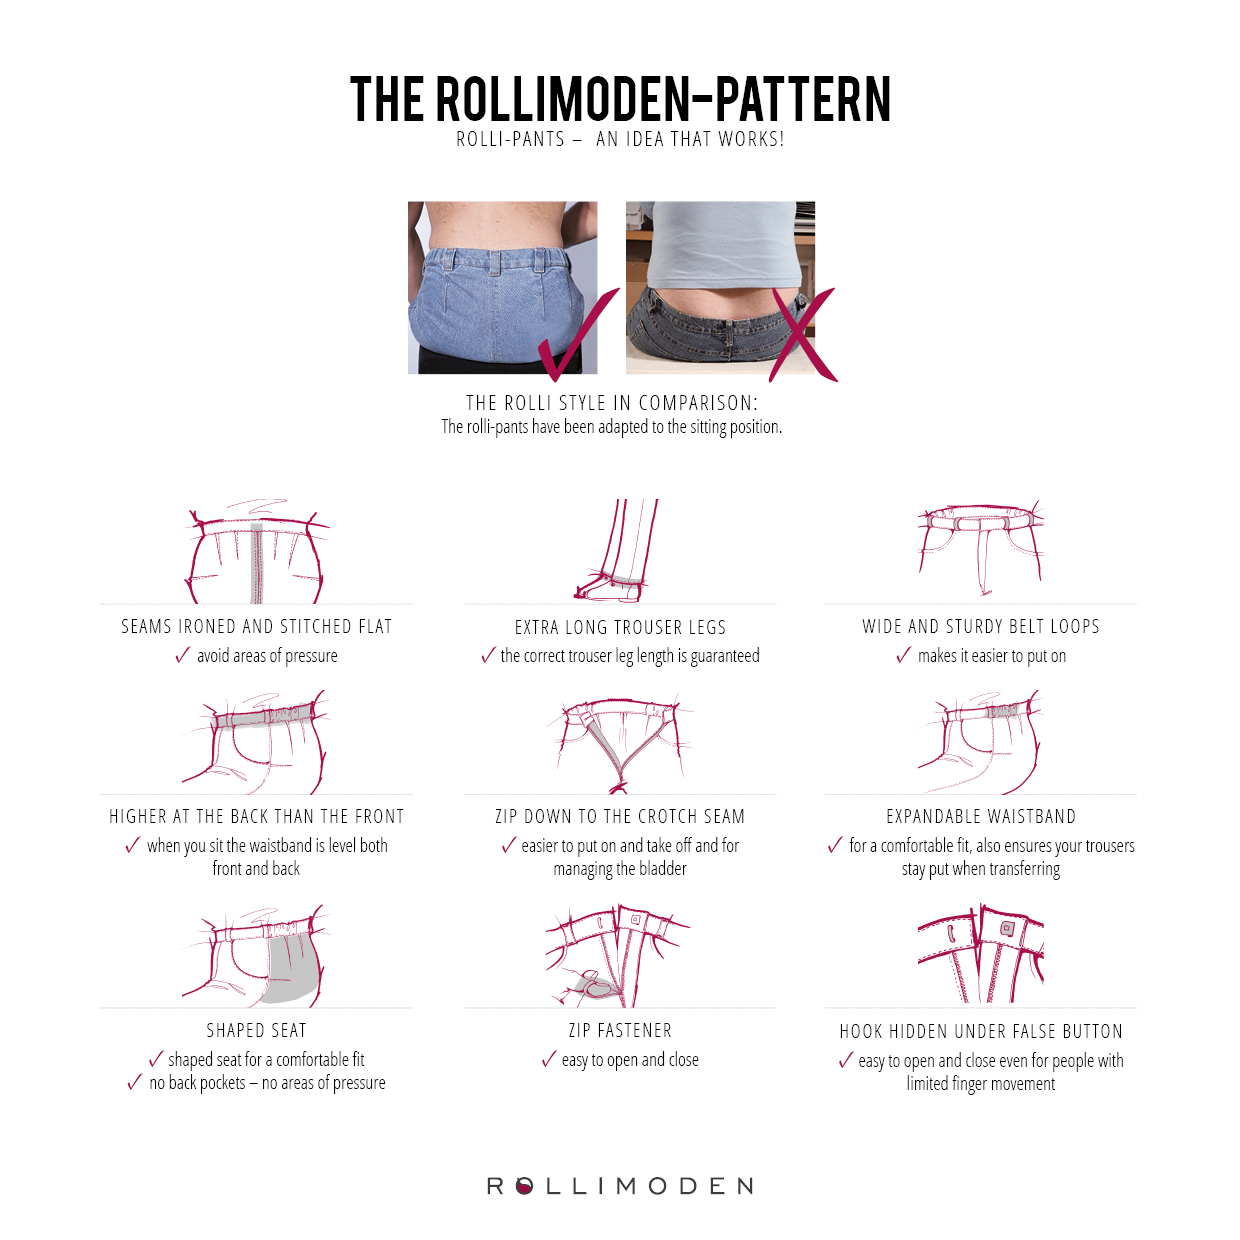 The Rollimoden pattern